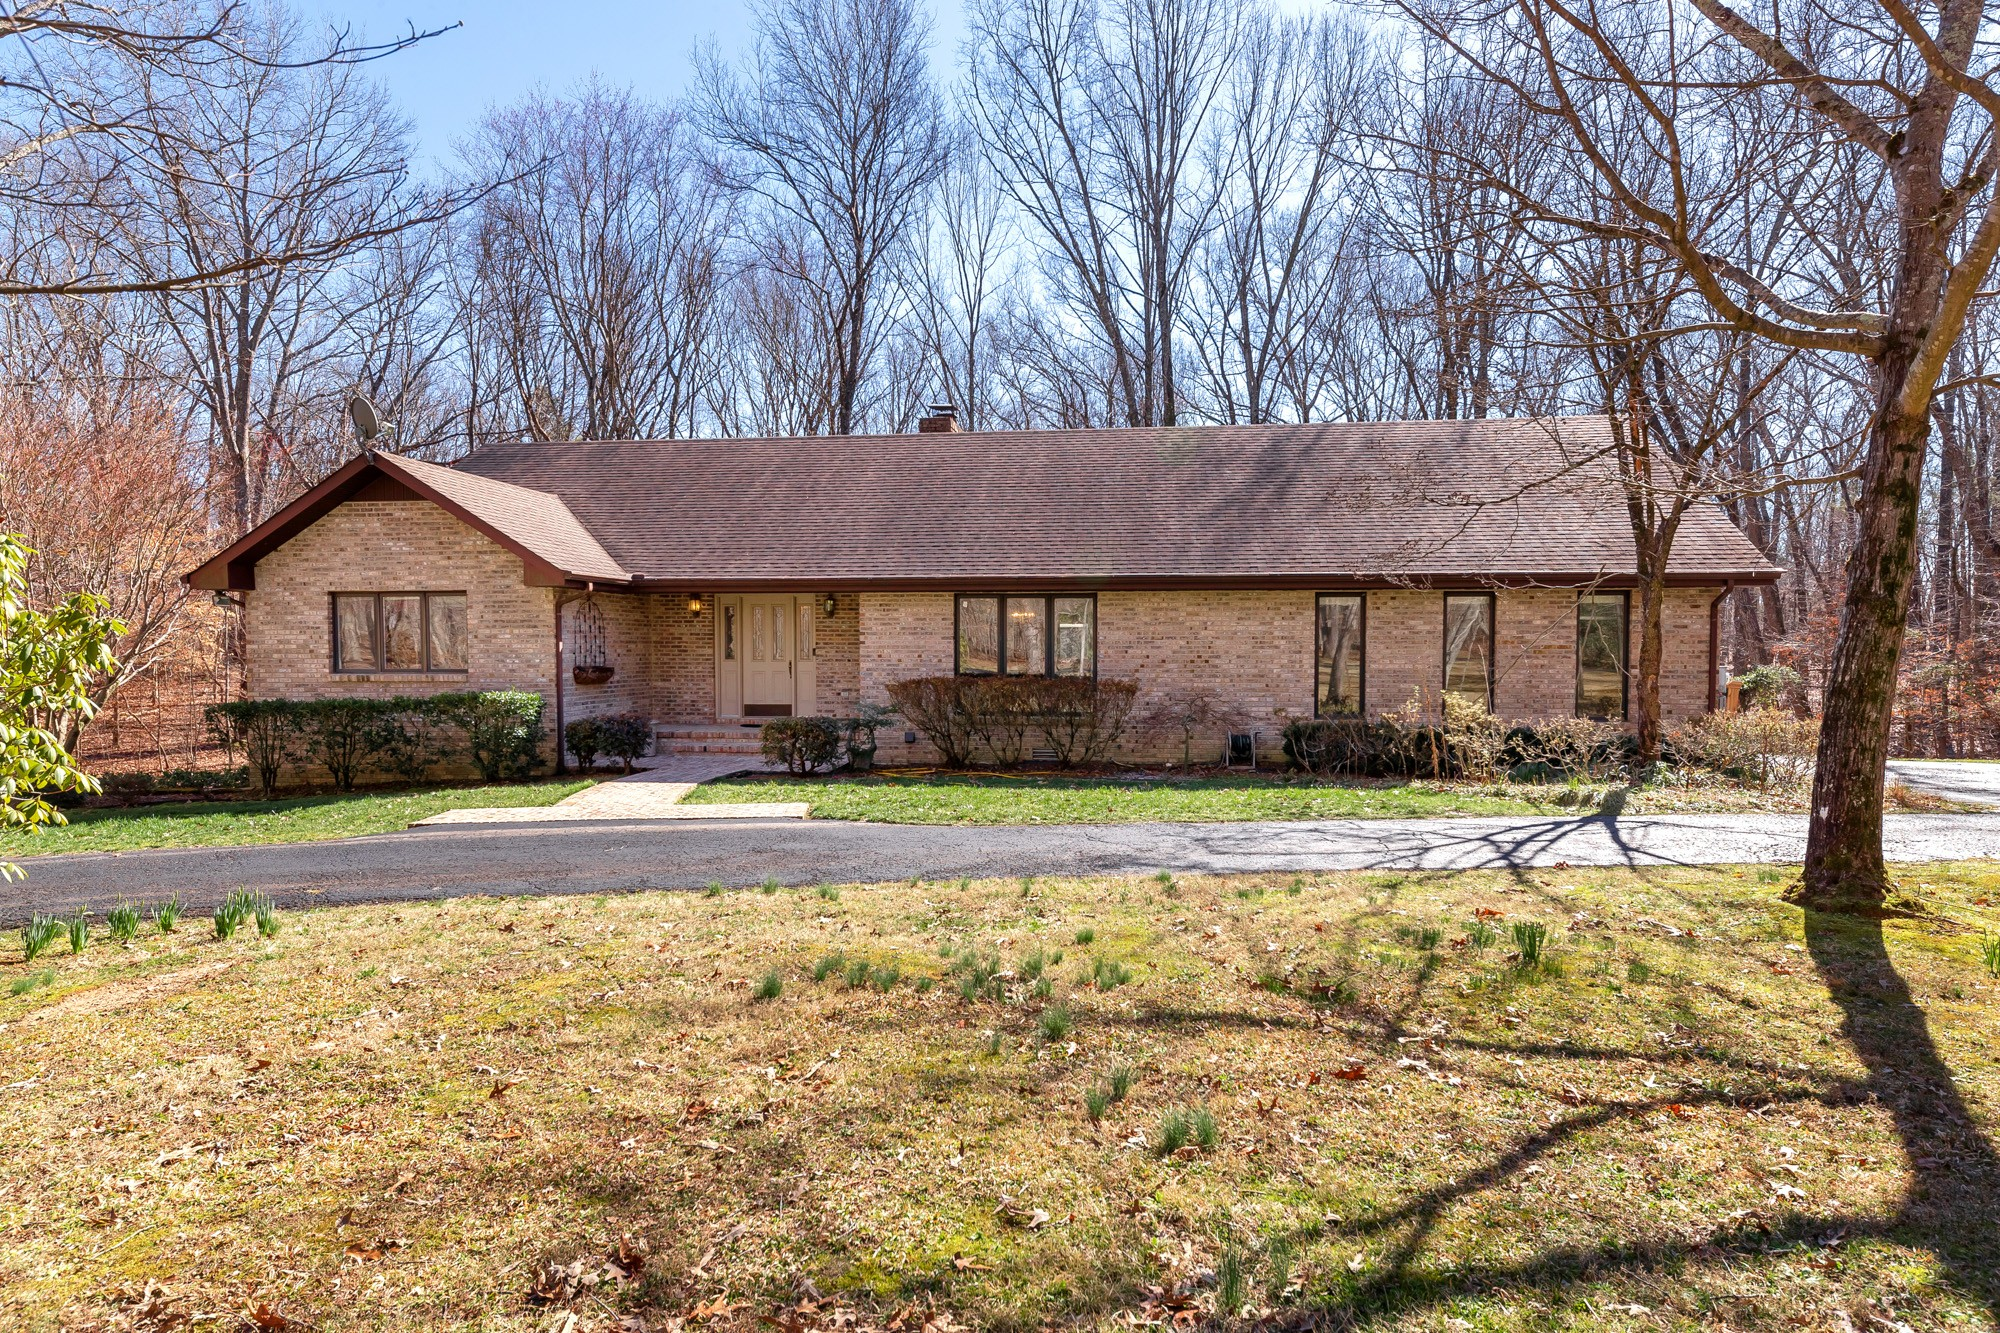 1420 Short Springs Rd Property Photo - Tullahoma, TN real estate listing